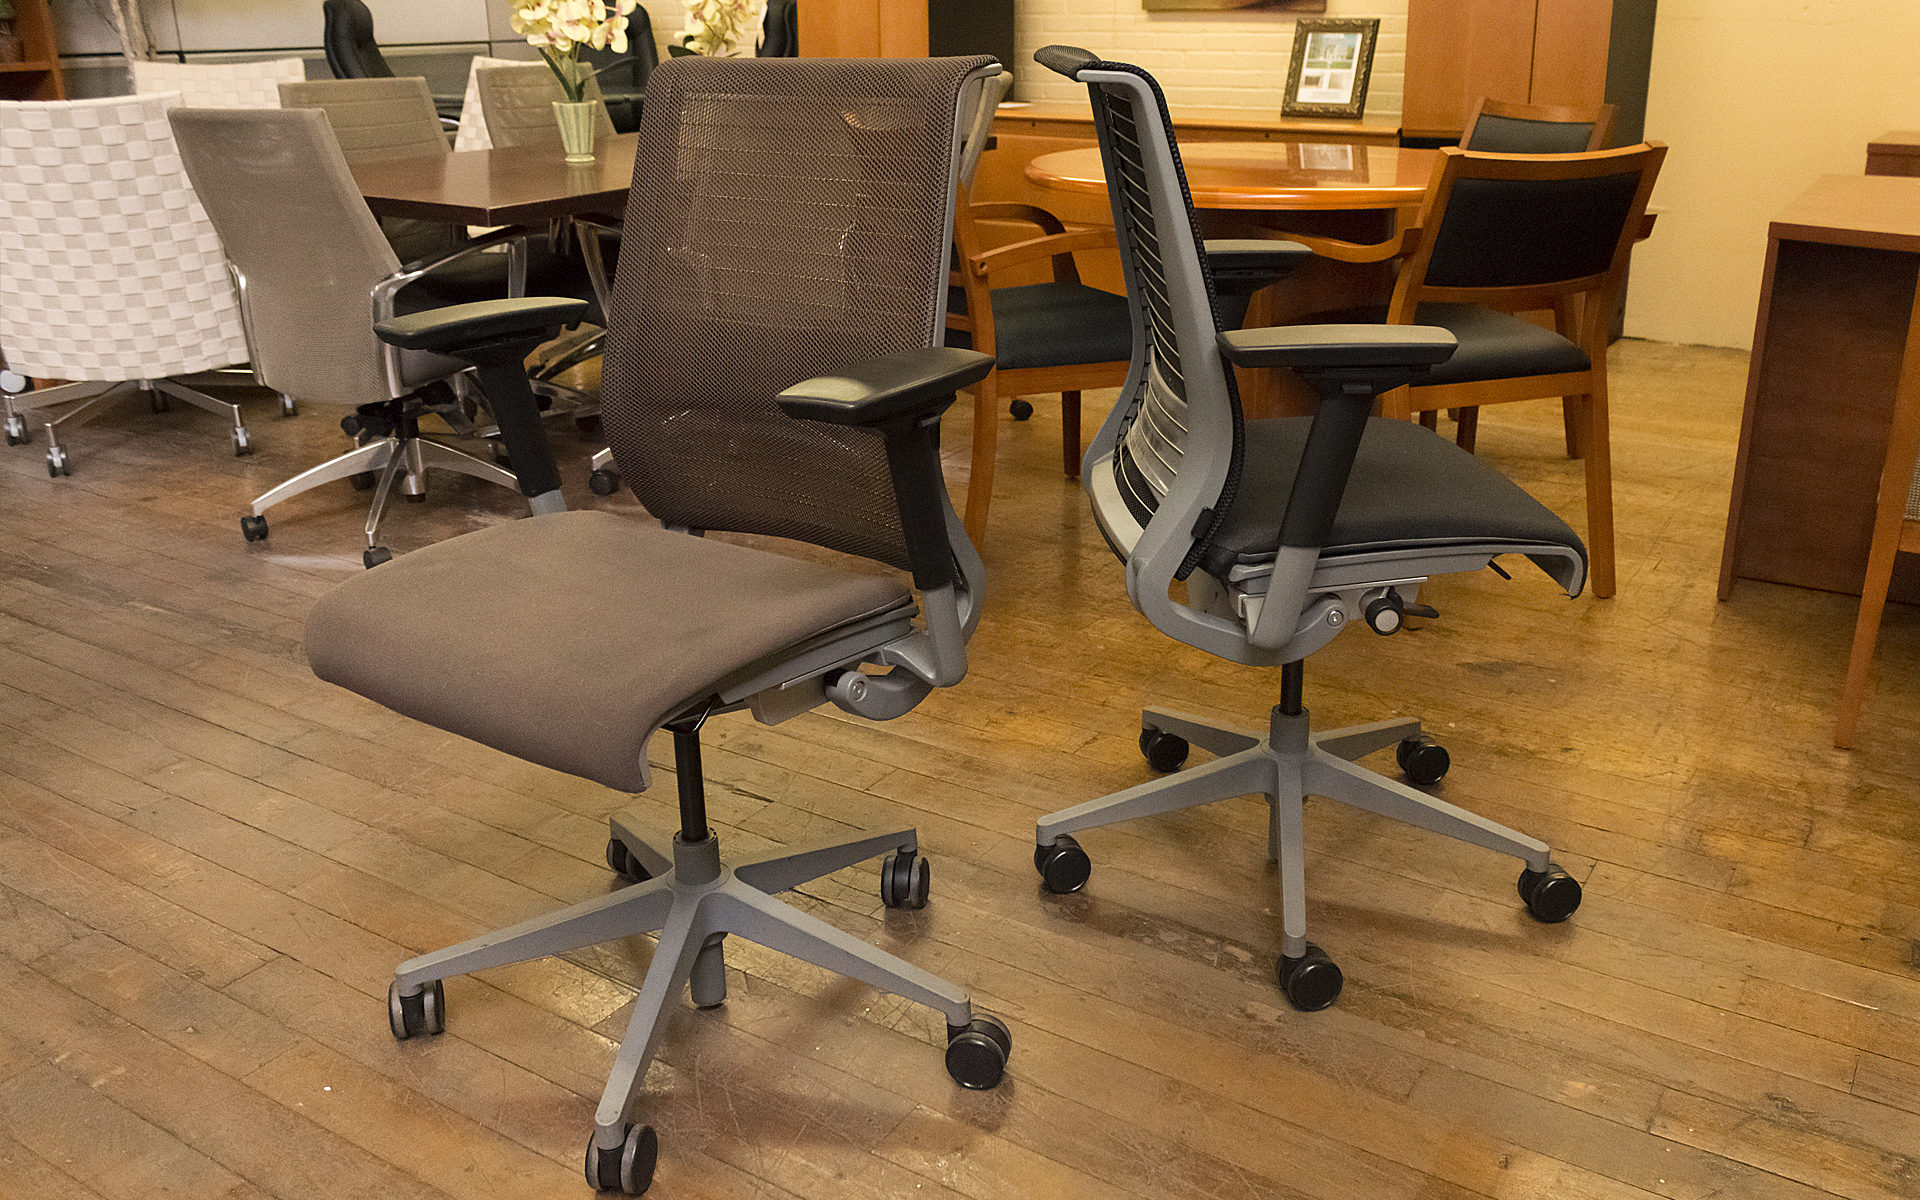 peartreeofficefurniture_peartreeofficefurniture_think1.jpg